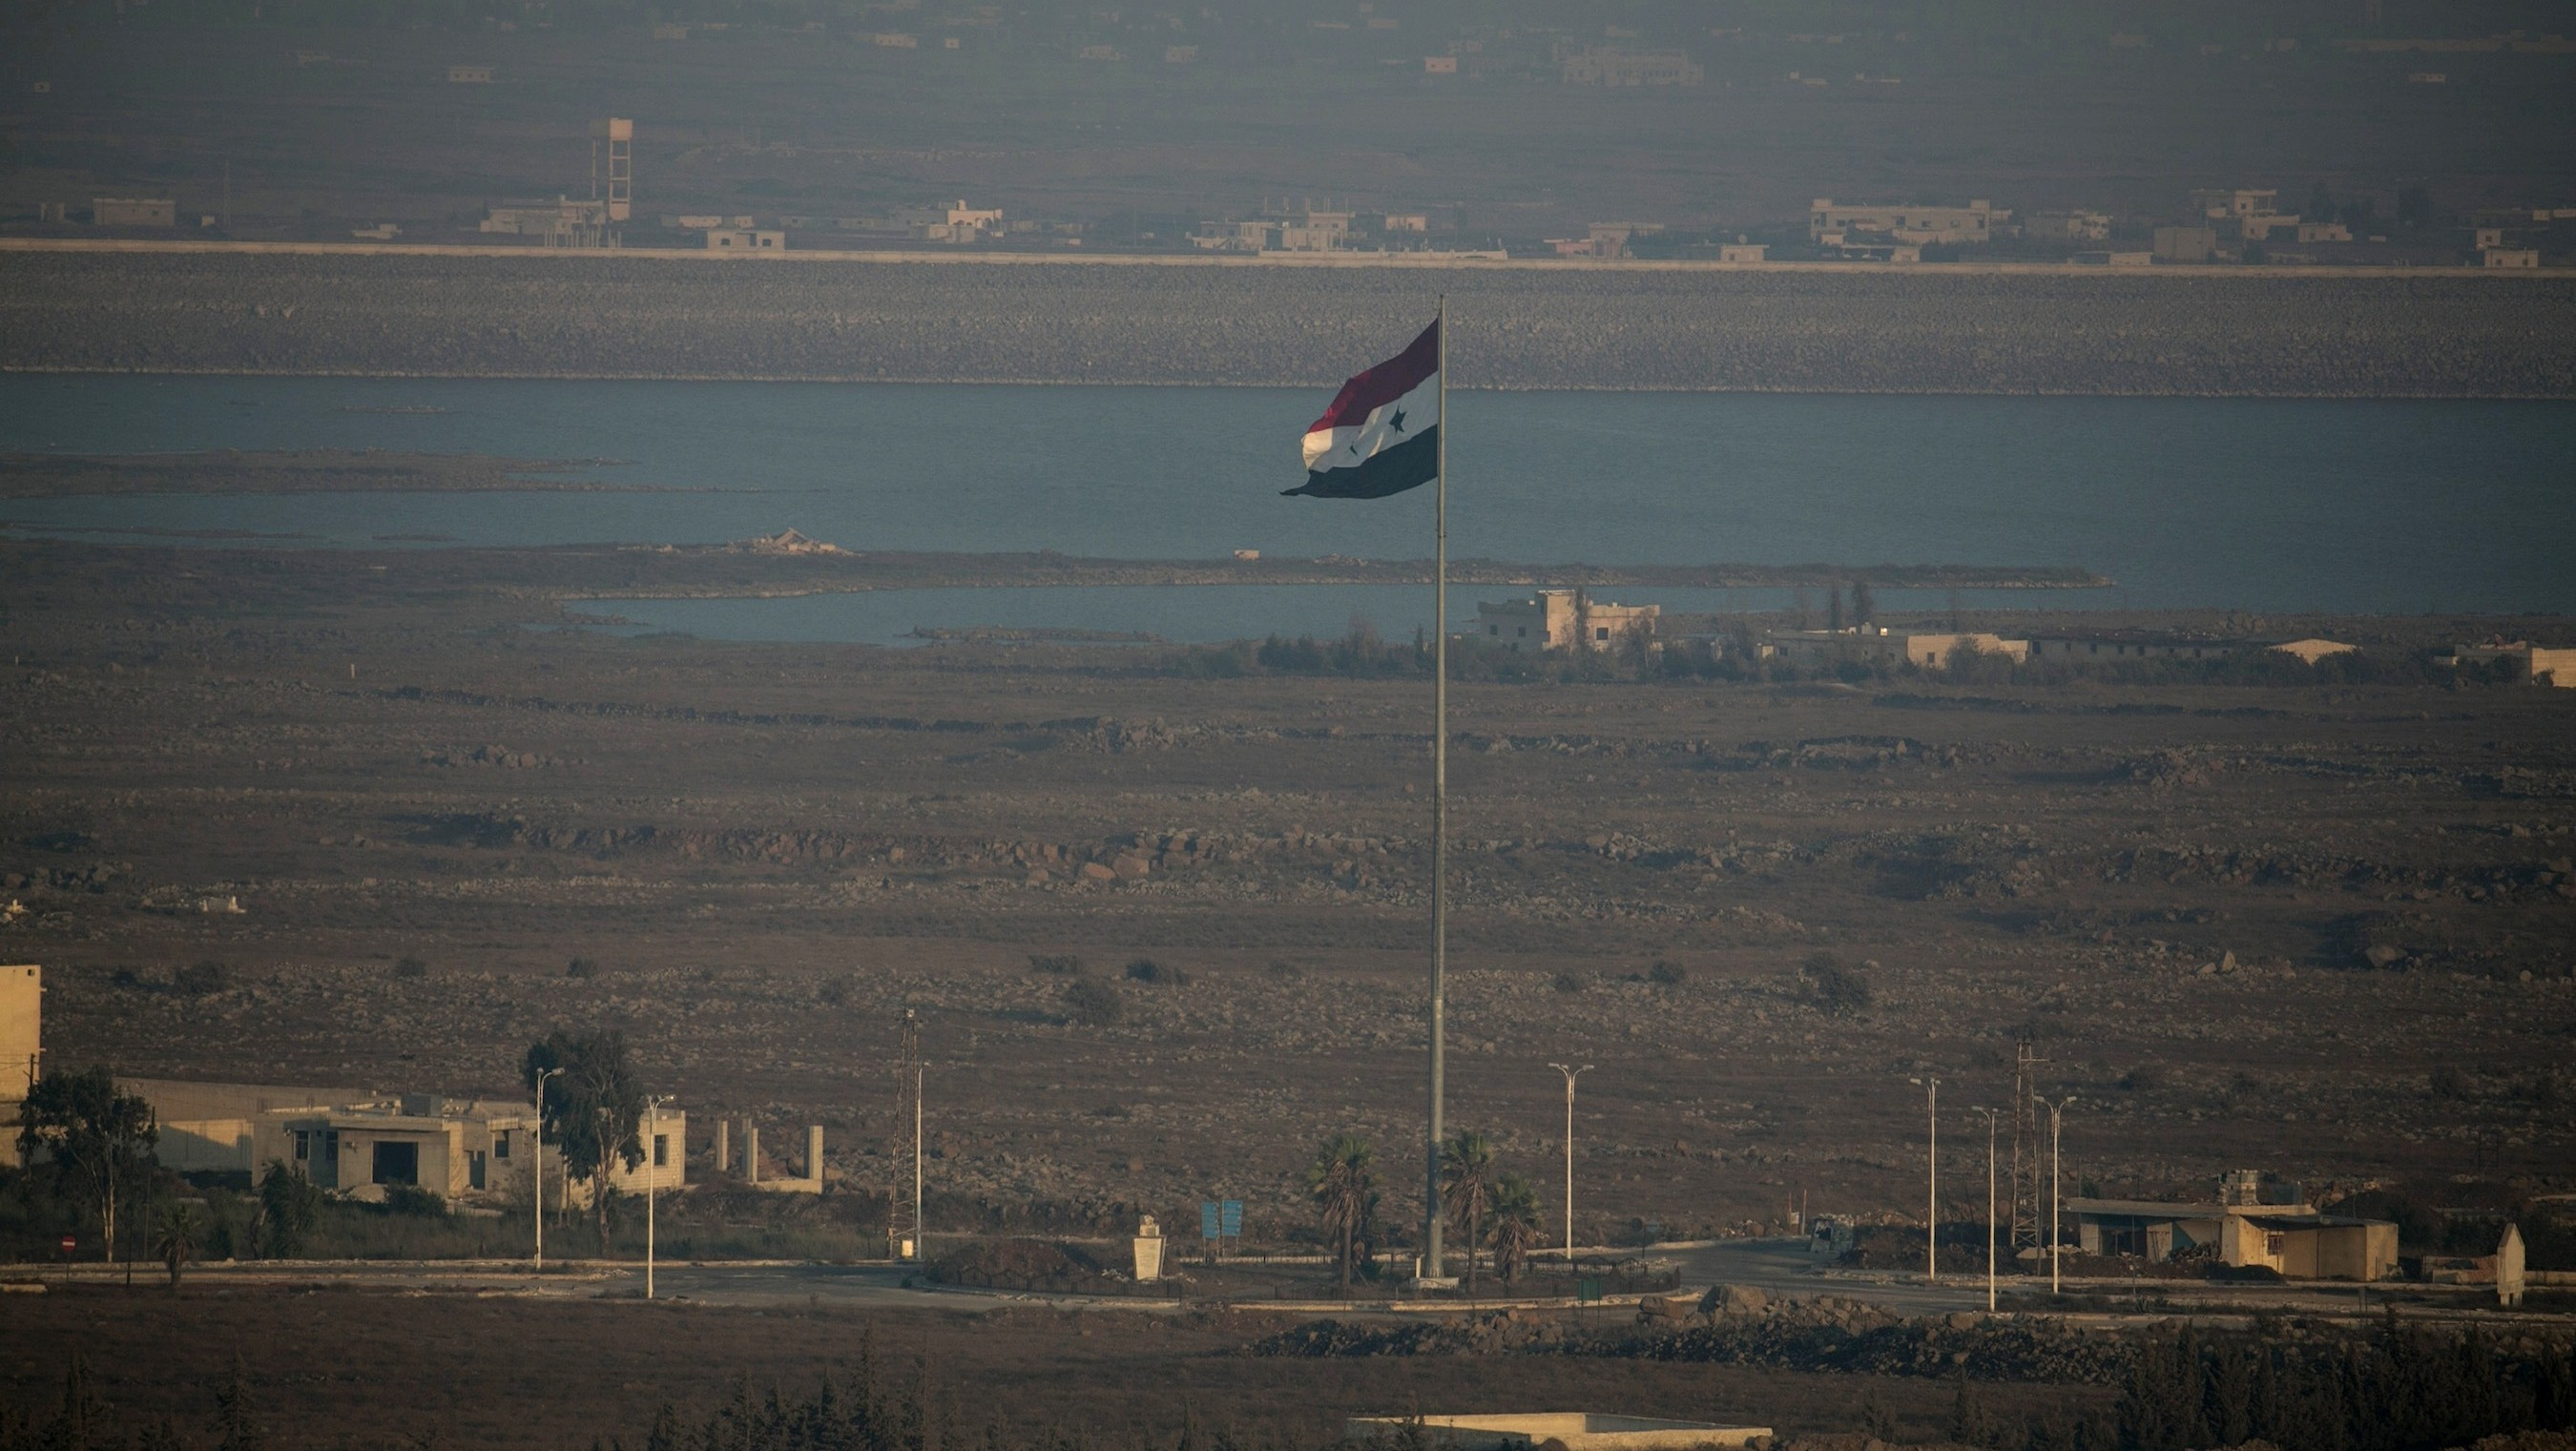 Syria says it shot down Israeli planes — Israel says it's 'total lies'